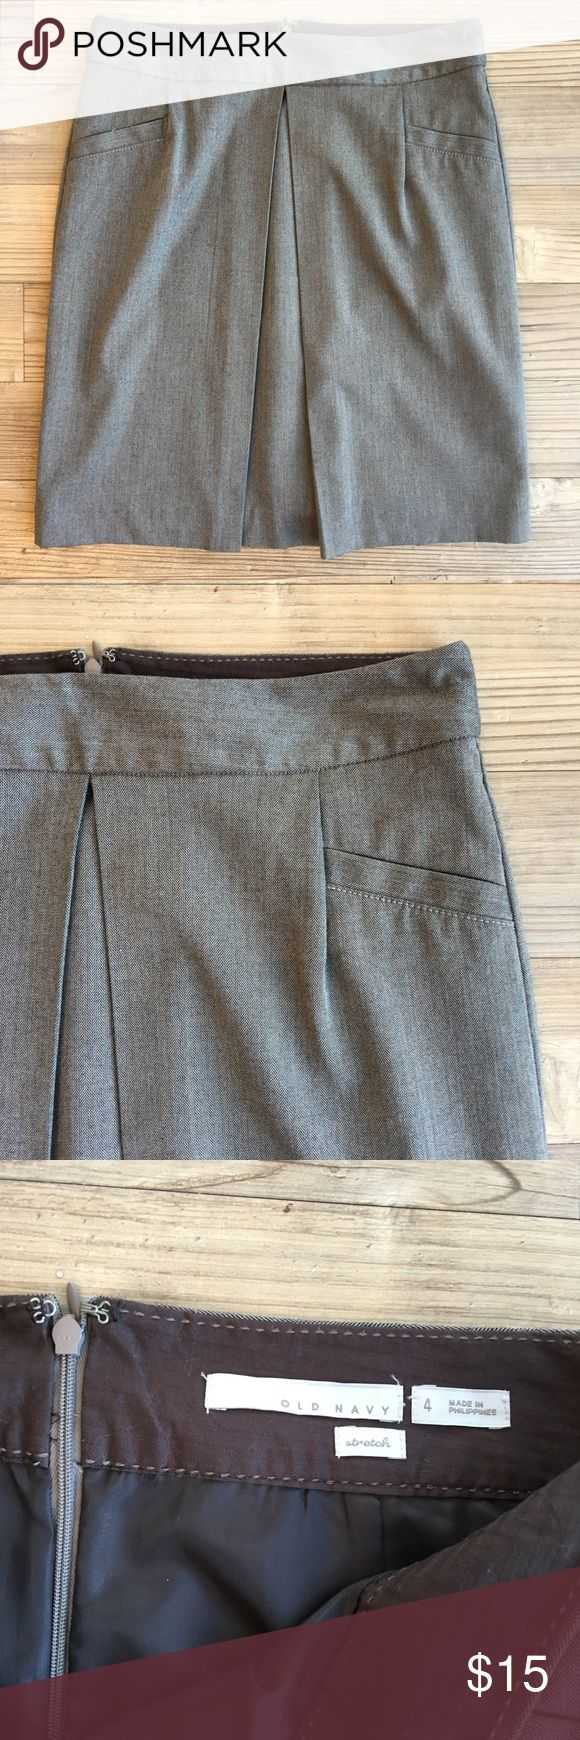 """Old Navy Career Pencil Skirt Gently worn Women's Old Navy Career Pencil Skirt Size 4 Cute style - see photos Knee length Rear zip at the waist No stains or holes Non-smoking home Lined Length: 20.5"""" Waist flat: 16"""" Old Navy Skirts Midi"""